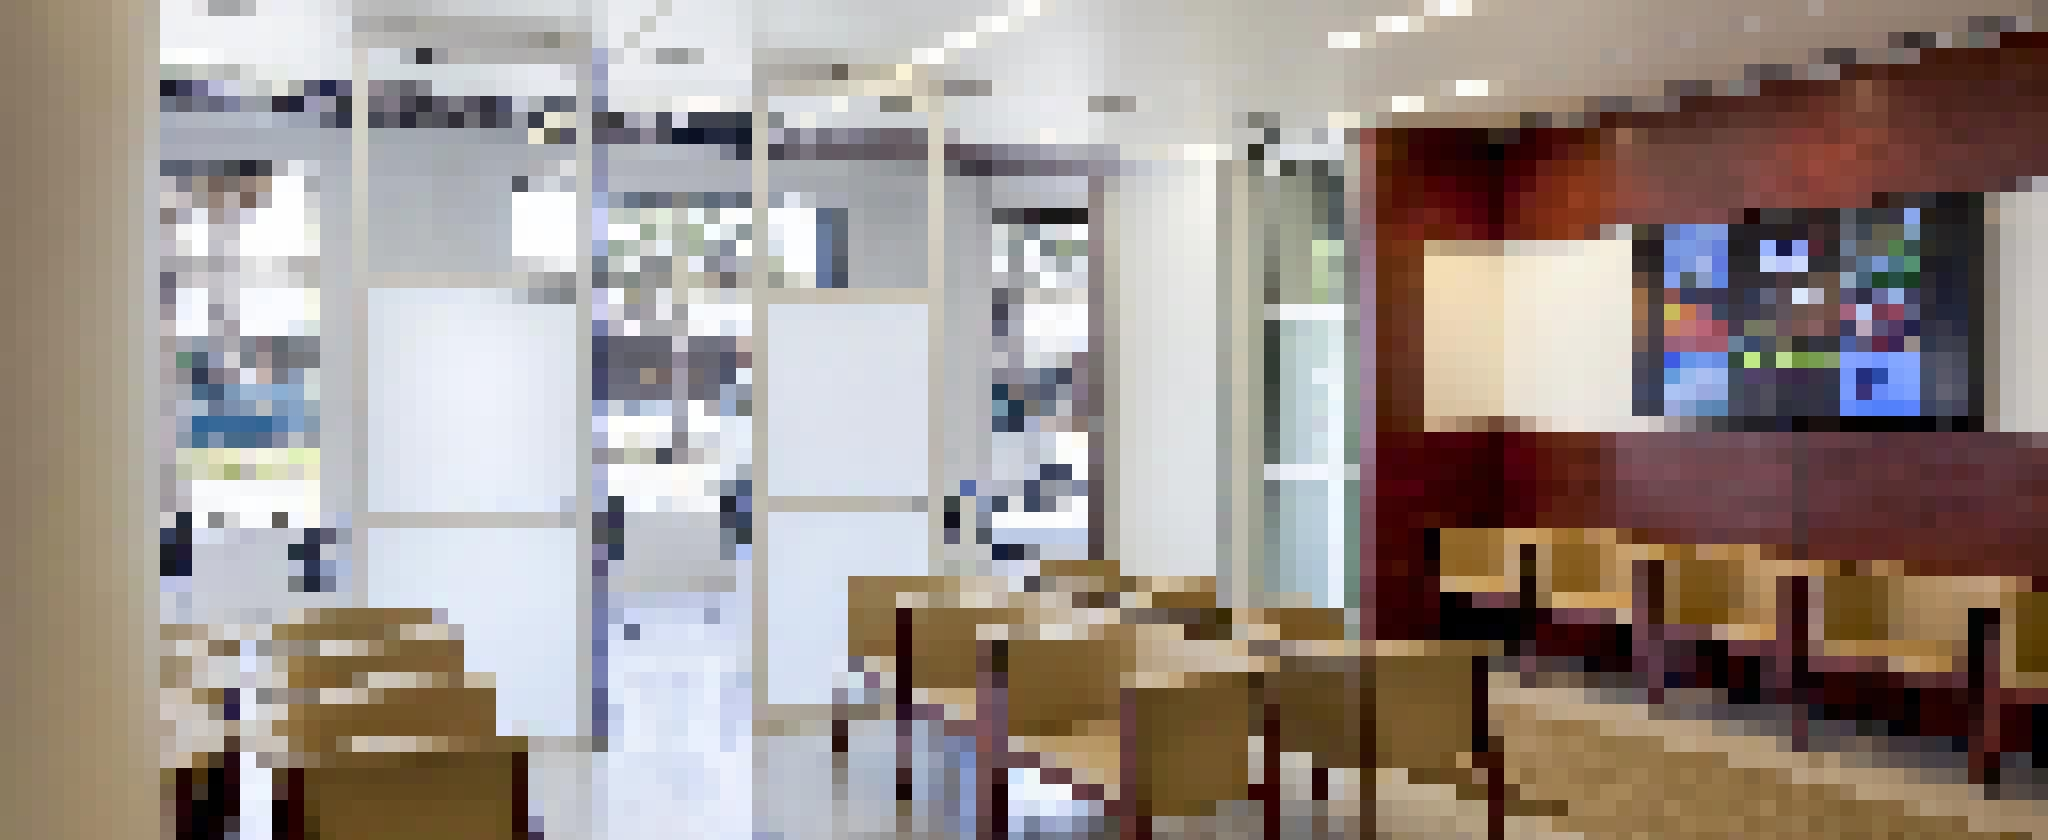 lobby waiting room in health care facility with Operable Interior Glass Systems